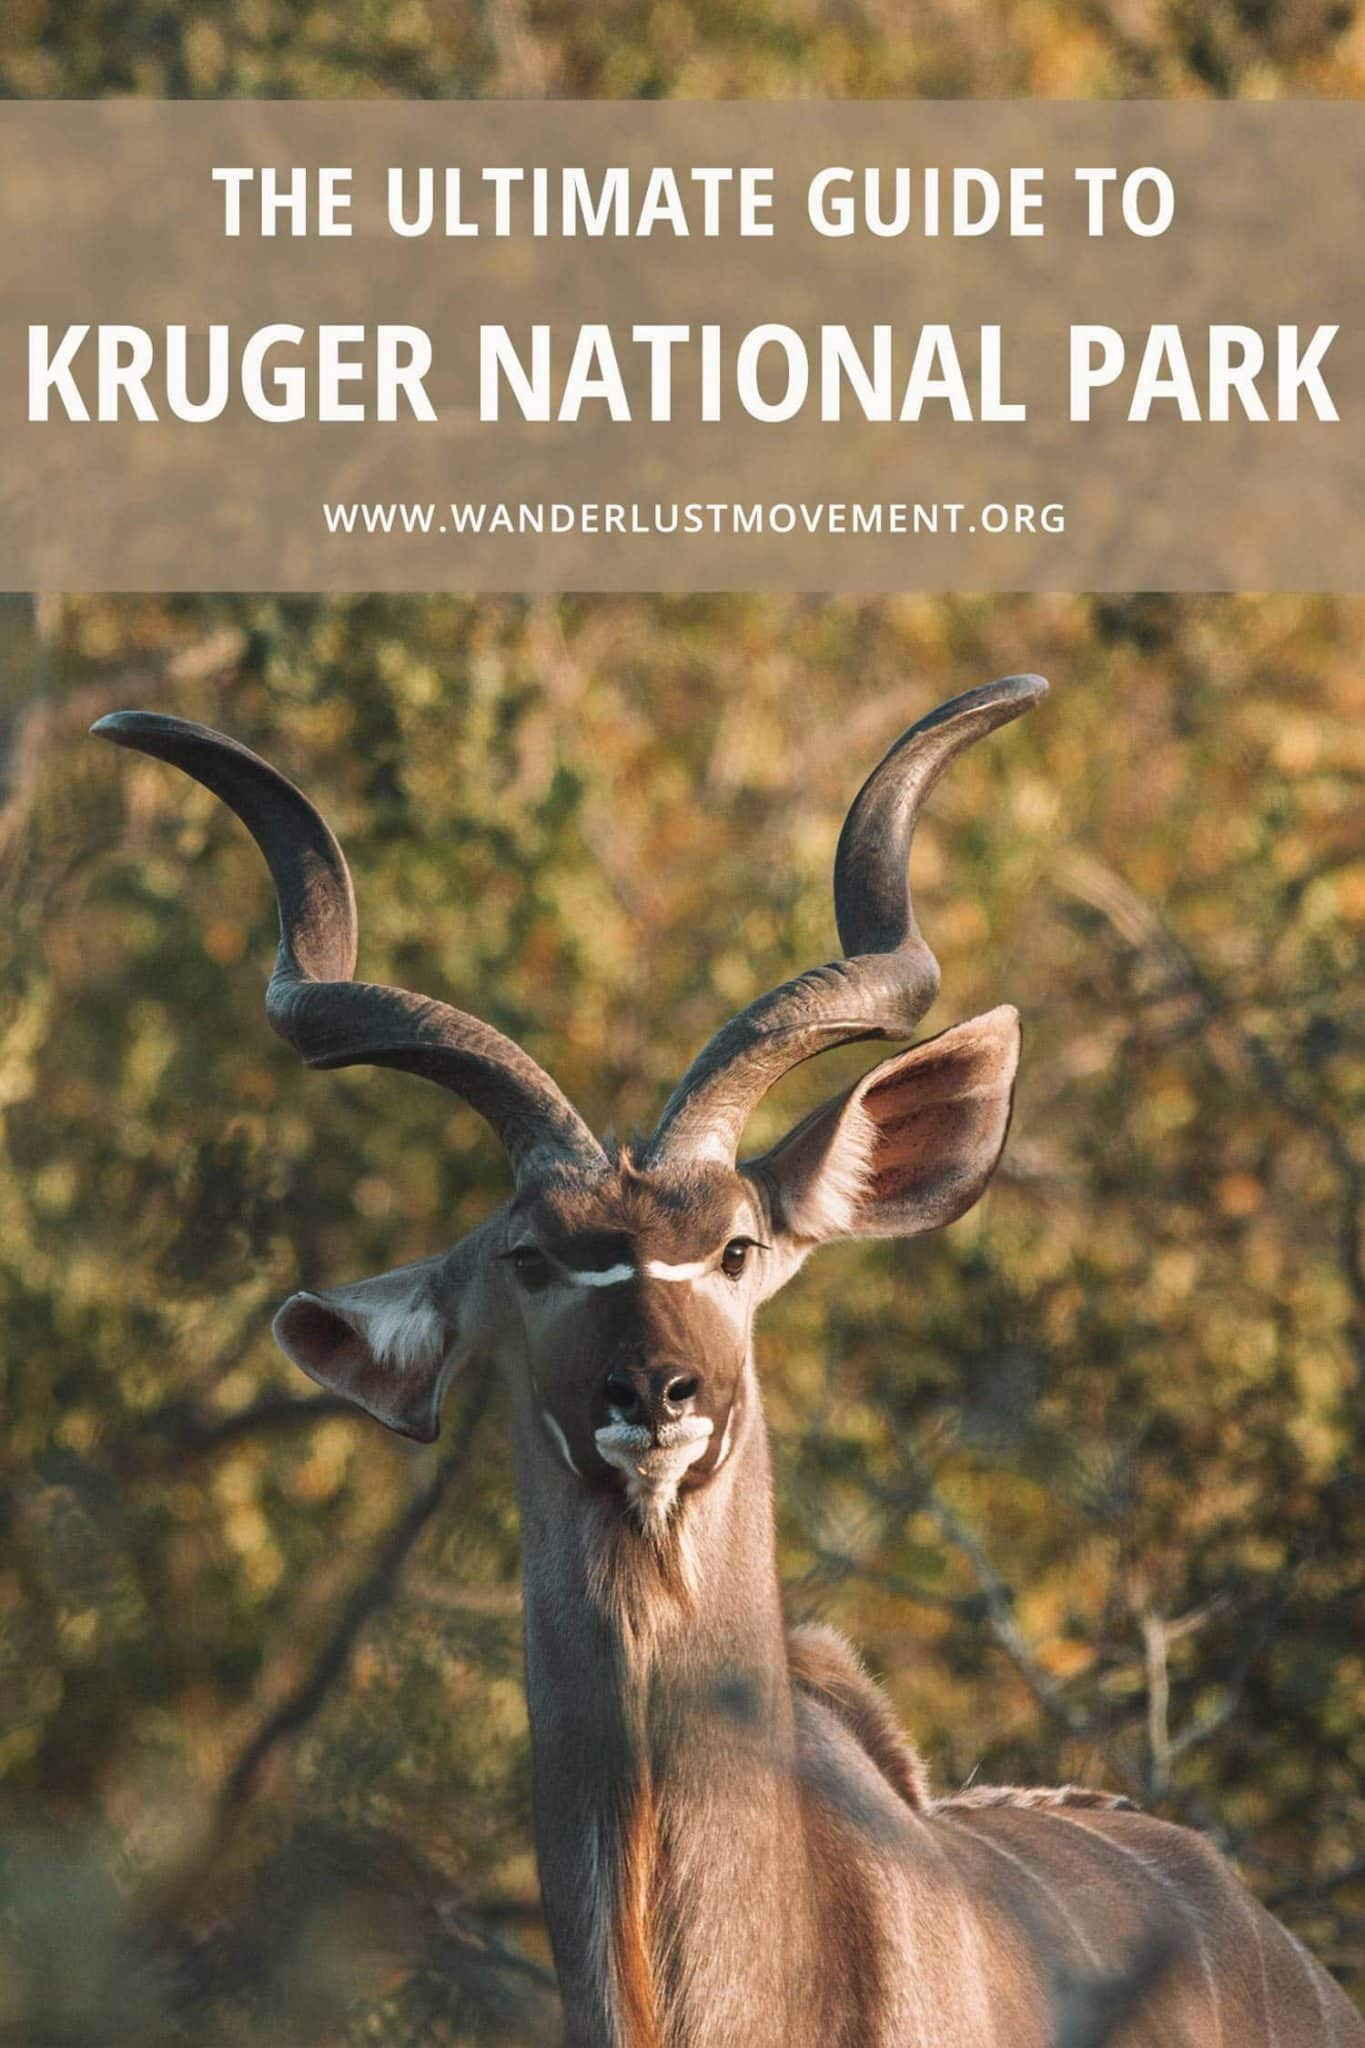 Visiting Kruger National Park: Everything You Need to Know